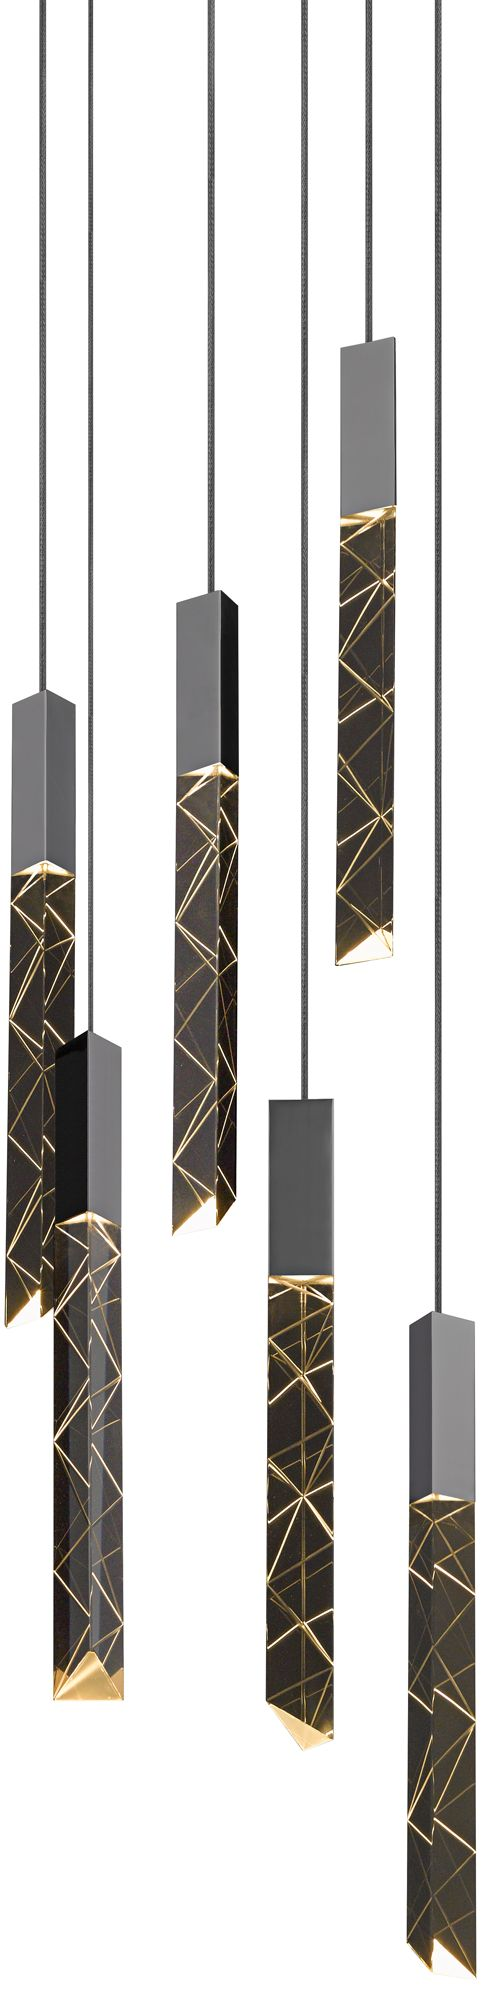 Trinity 9 1/4 W Polished Chrome LED Multi-Light Pendant  sc 1 st  L&s Plus & Multi Light Pendant Lighting Fixtures | Lamps Plus azcodes.com